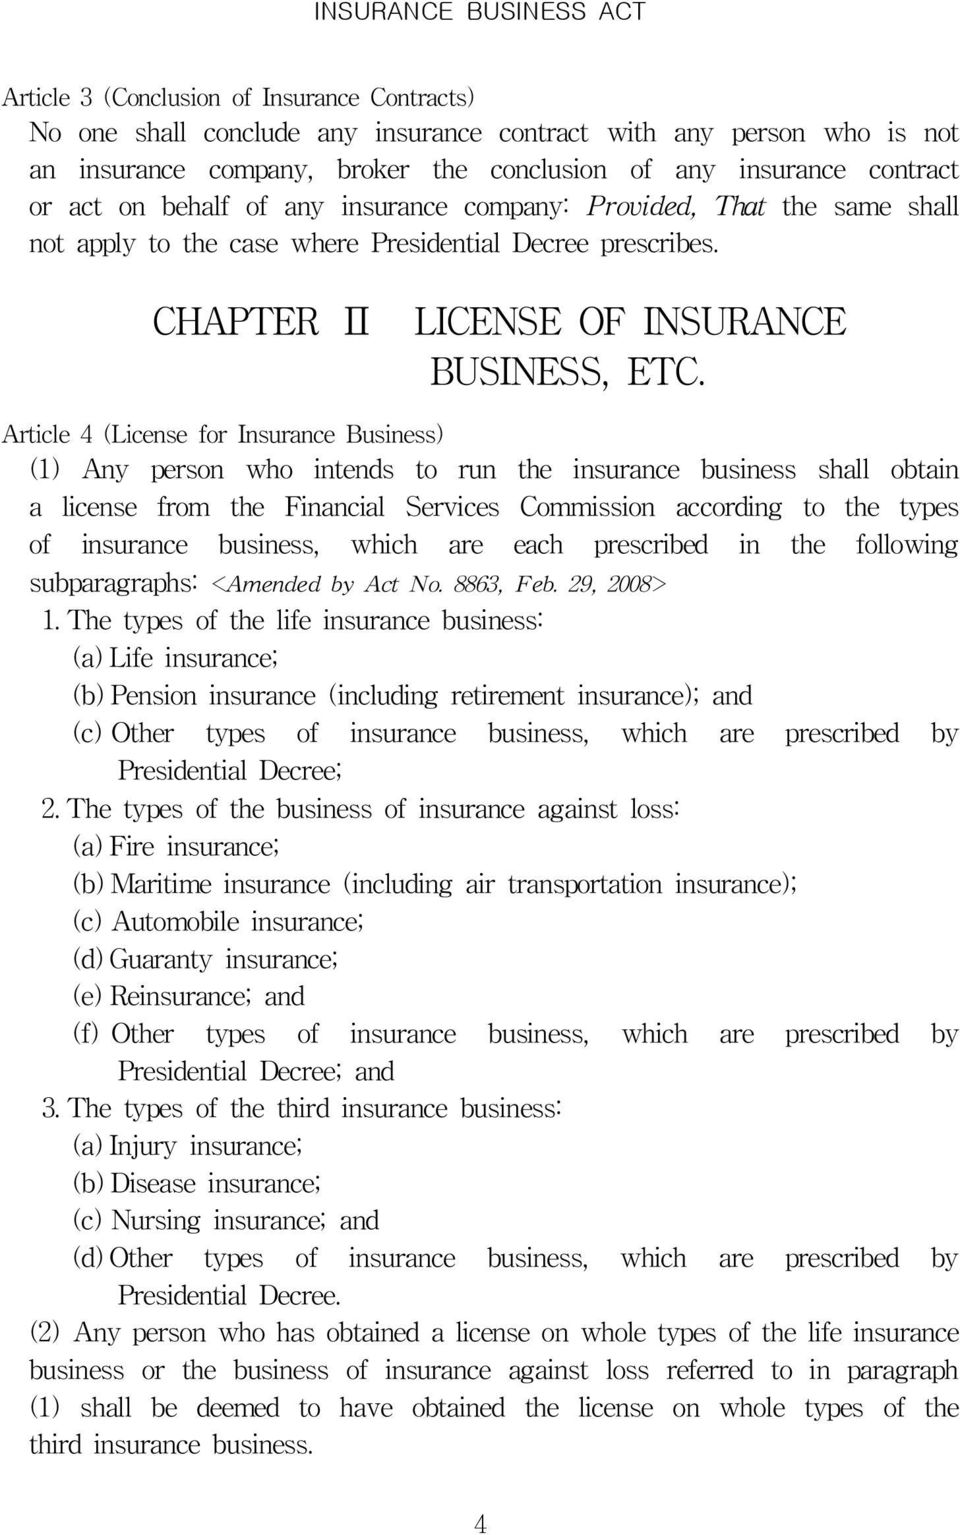 Article 4 (License for Insurance Business) (1) Any person who intends to run the insurance business shall obtain a license from the Financial Services Commission according to the types of insurance